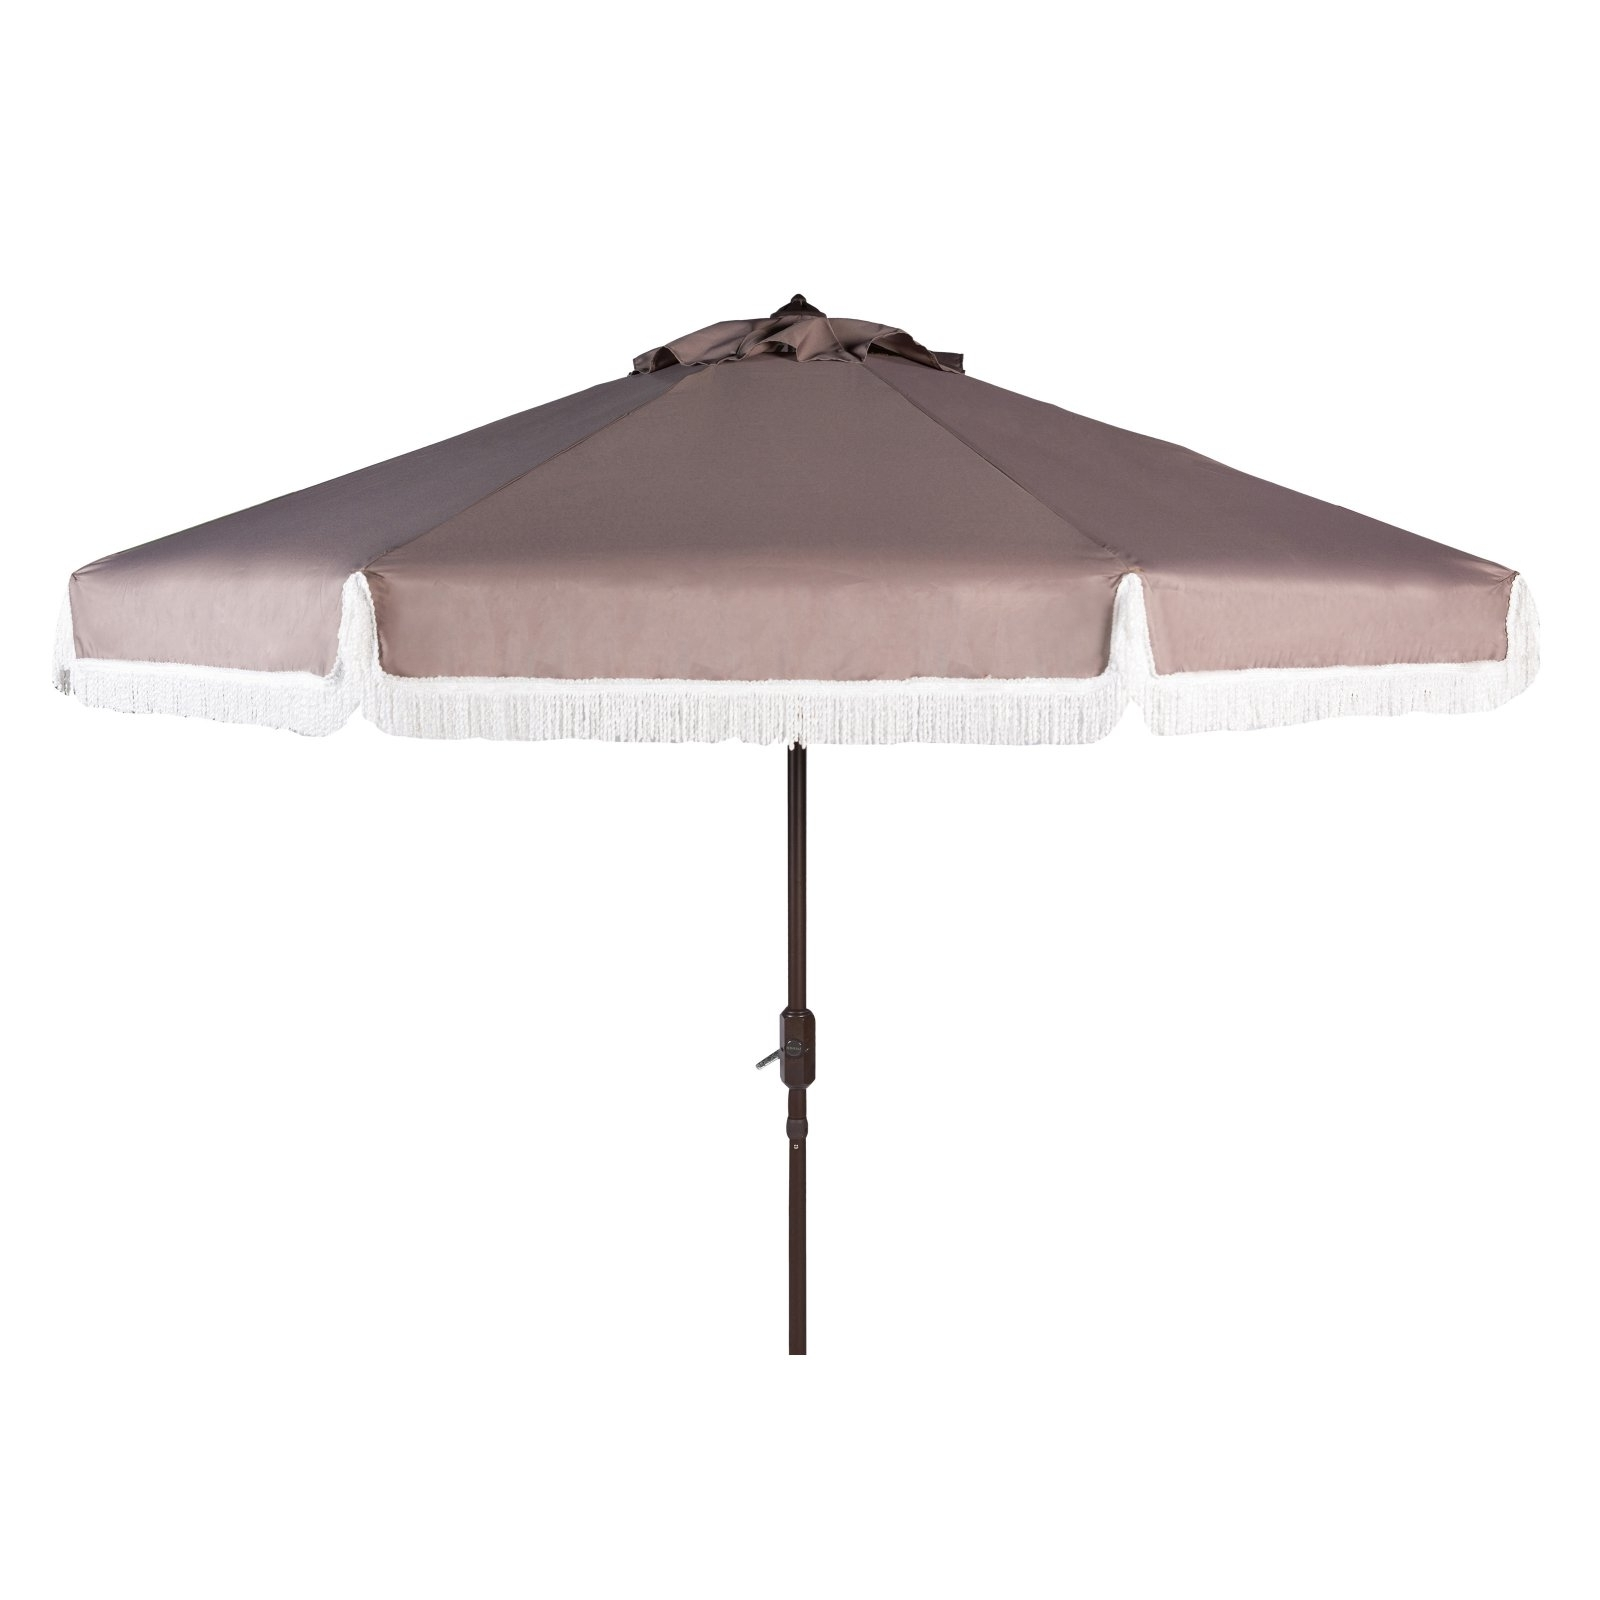 Safavieh Milan Fringe 9' Crank Outdoor Umbrella, Multiple Colors With Regard To Latest Patio Umbrellas With Fringe (View 14 of 20)